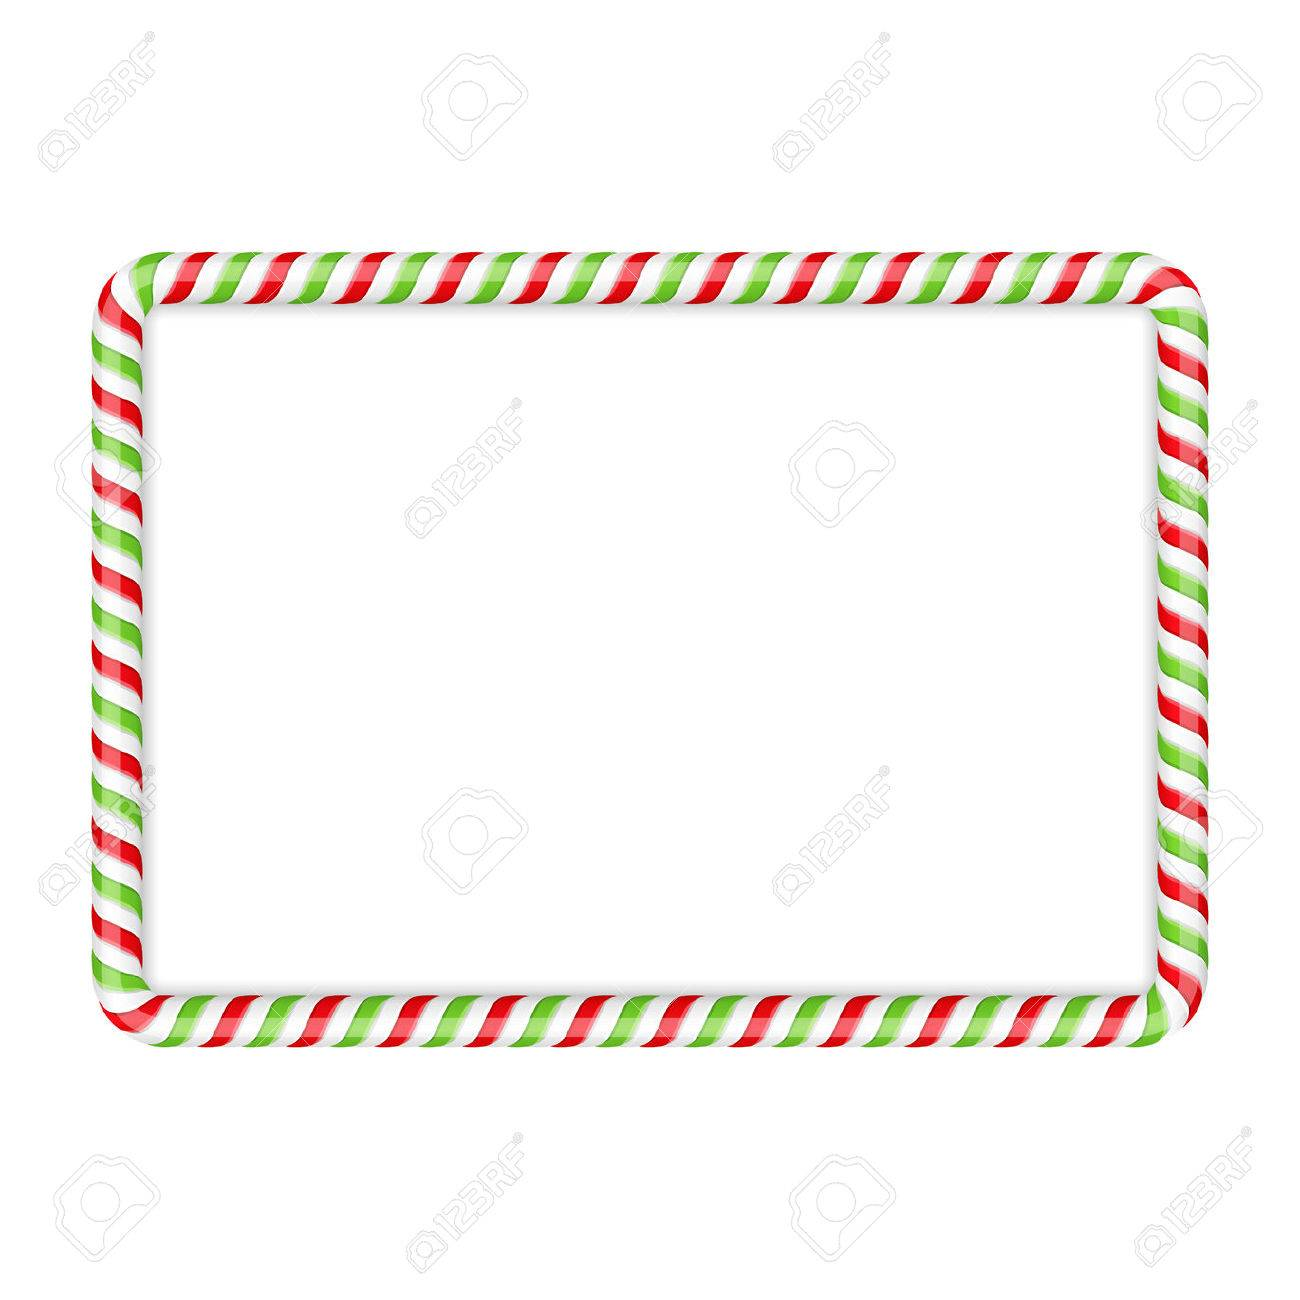 Frame made of candy cane, red and green colors - 47242209